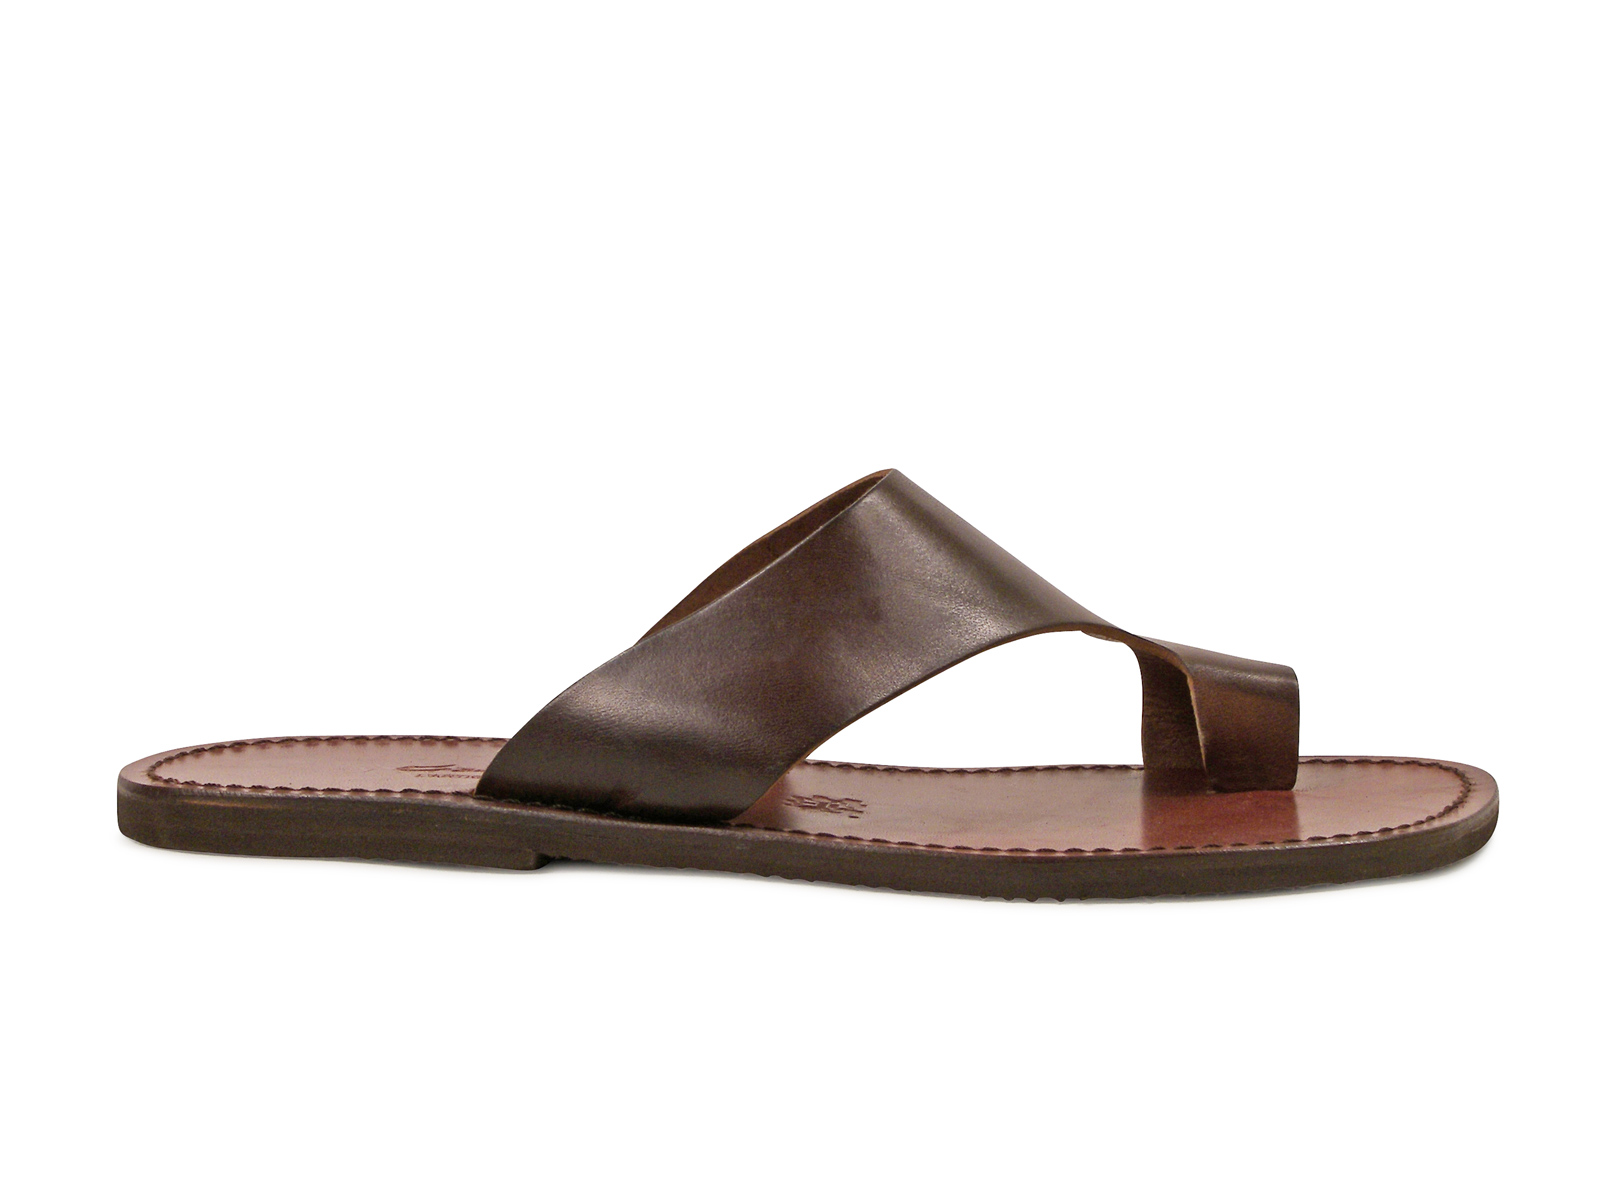 d51902f98ec0d7 Dark brown leather thong sandals for men Handmade in Italy .